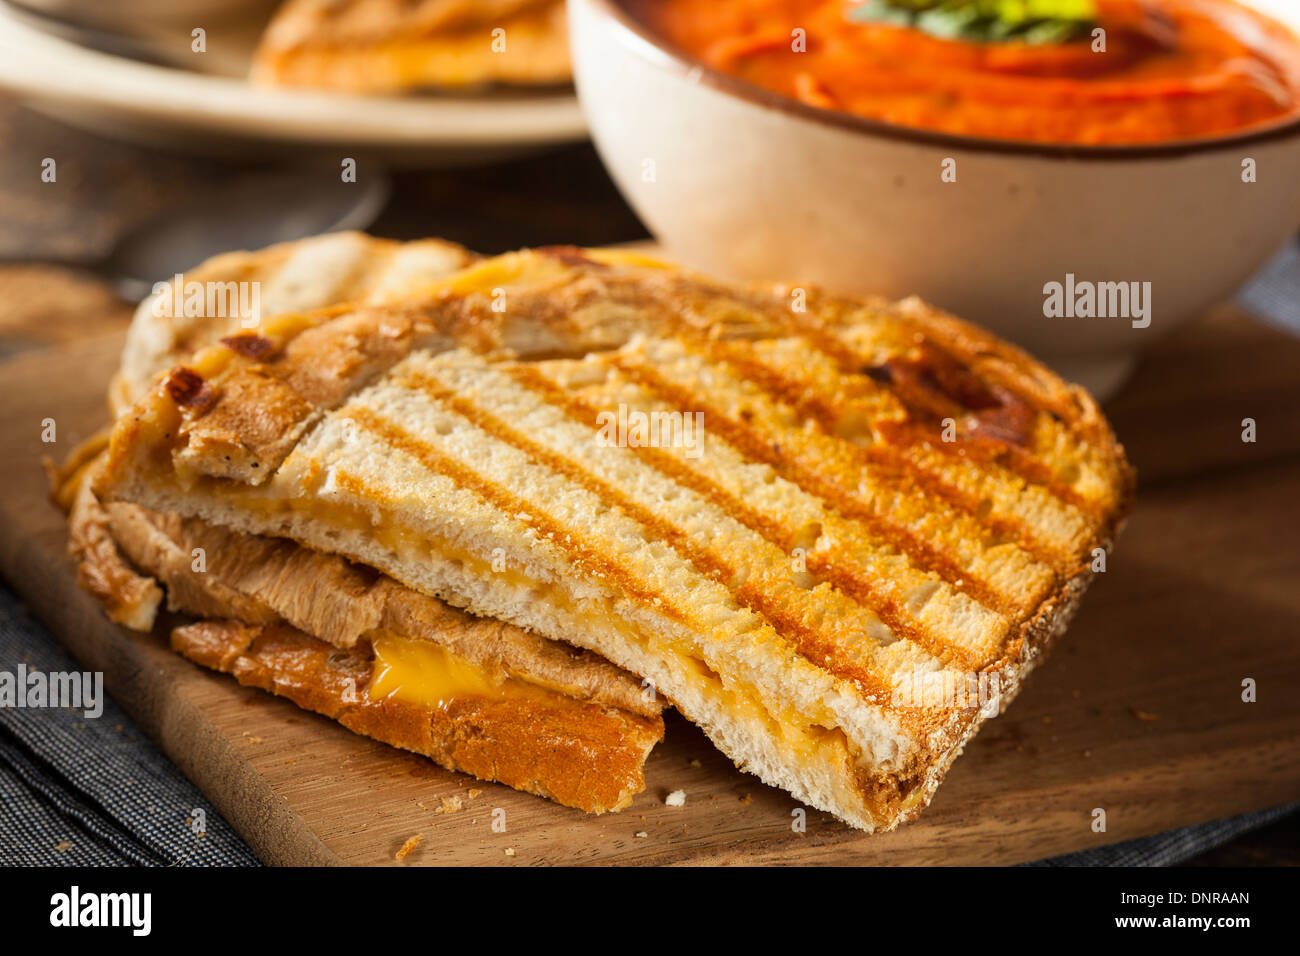 Grilled Cheese Sandwich with Creamy Tomato Basil Soup Stock Photo